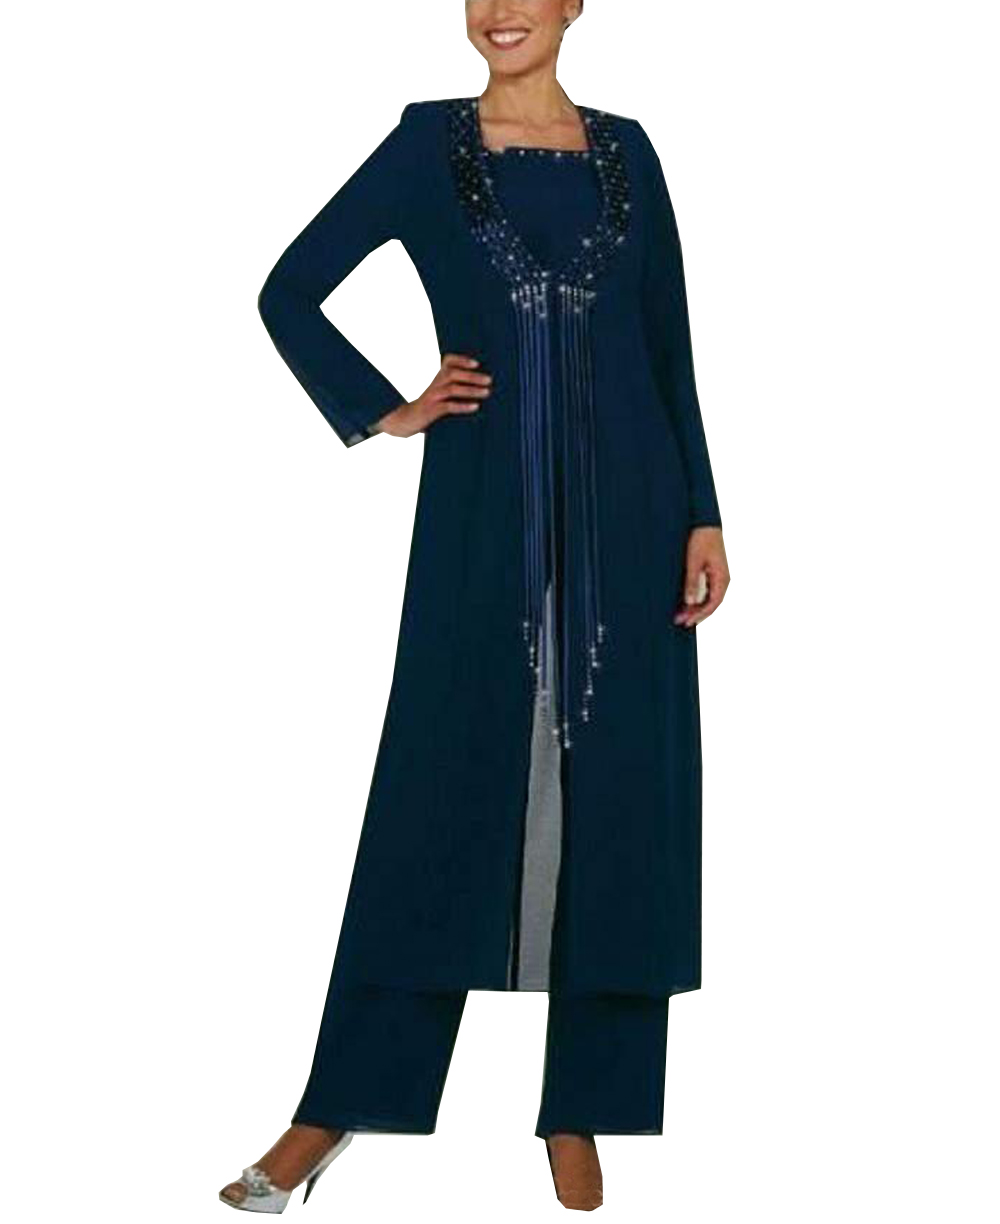 Women 3 Pieces Elegant Beading Tassel Chiffon Mother Of The Bride Dress Pants Suit With Jacket Outfit For Wedding Groom 2019